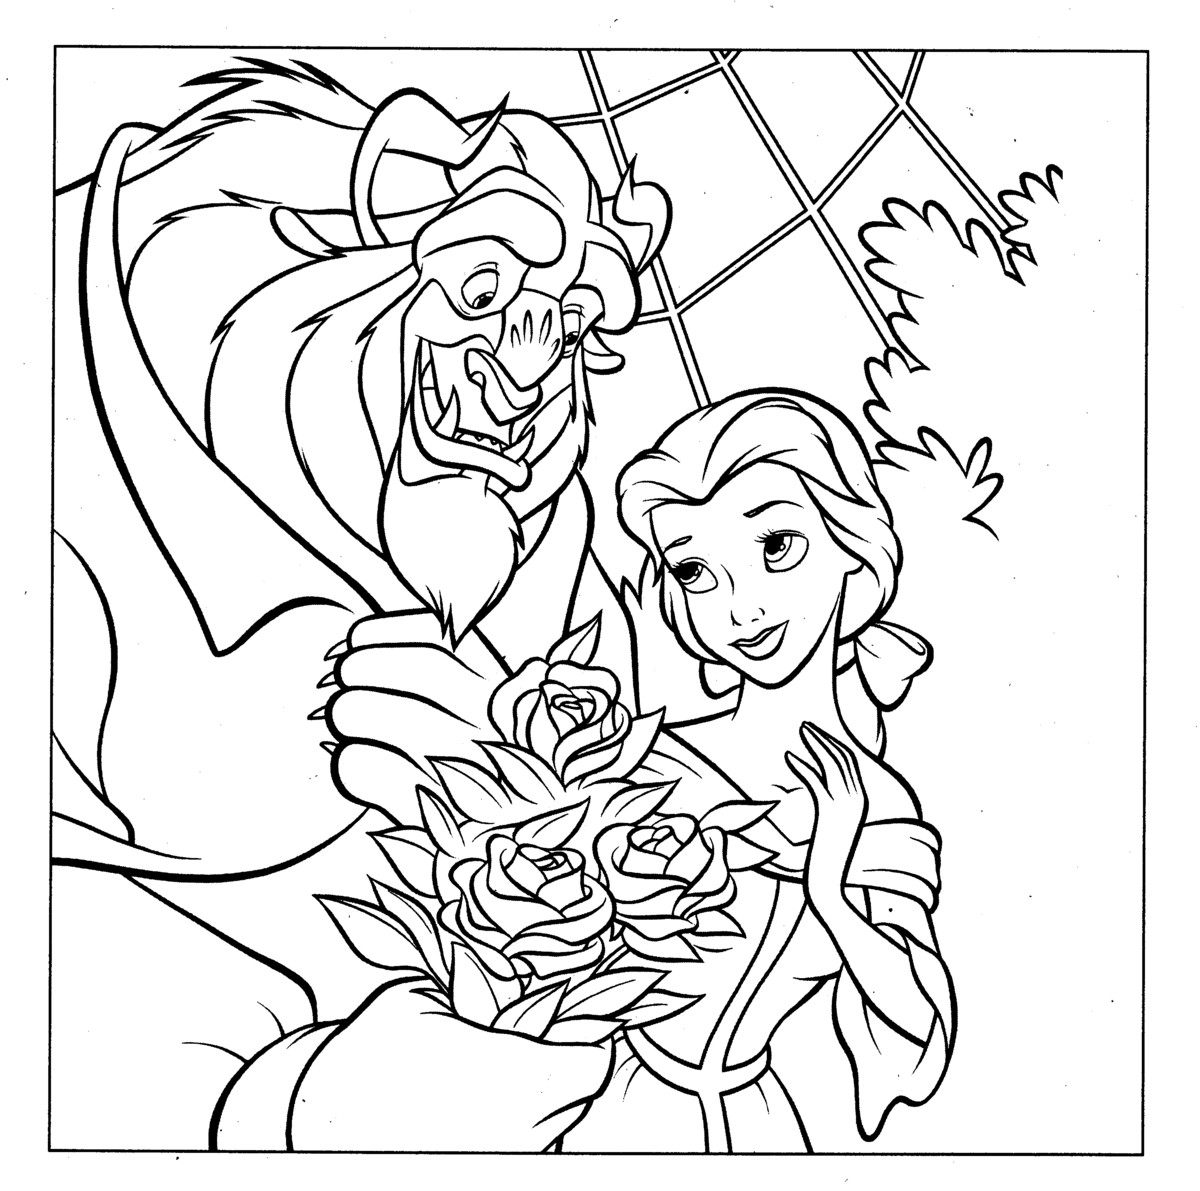 Free Printable Frozen Coloring Pages Earlymoments